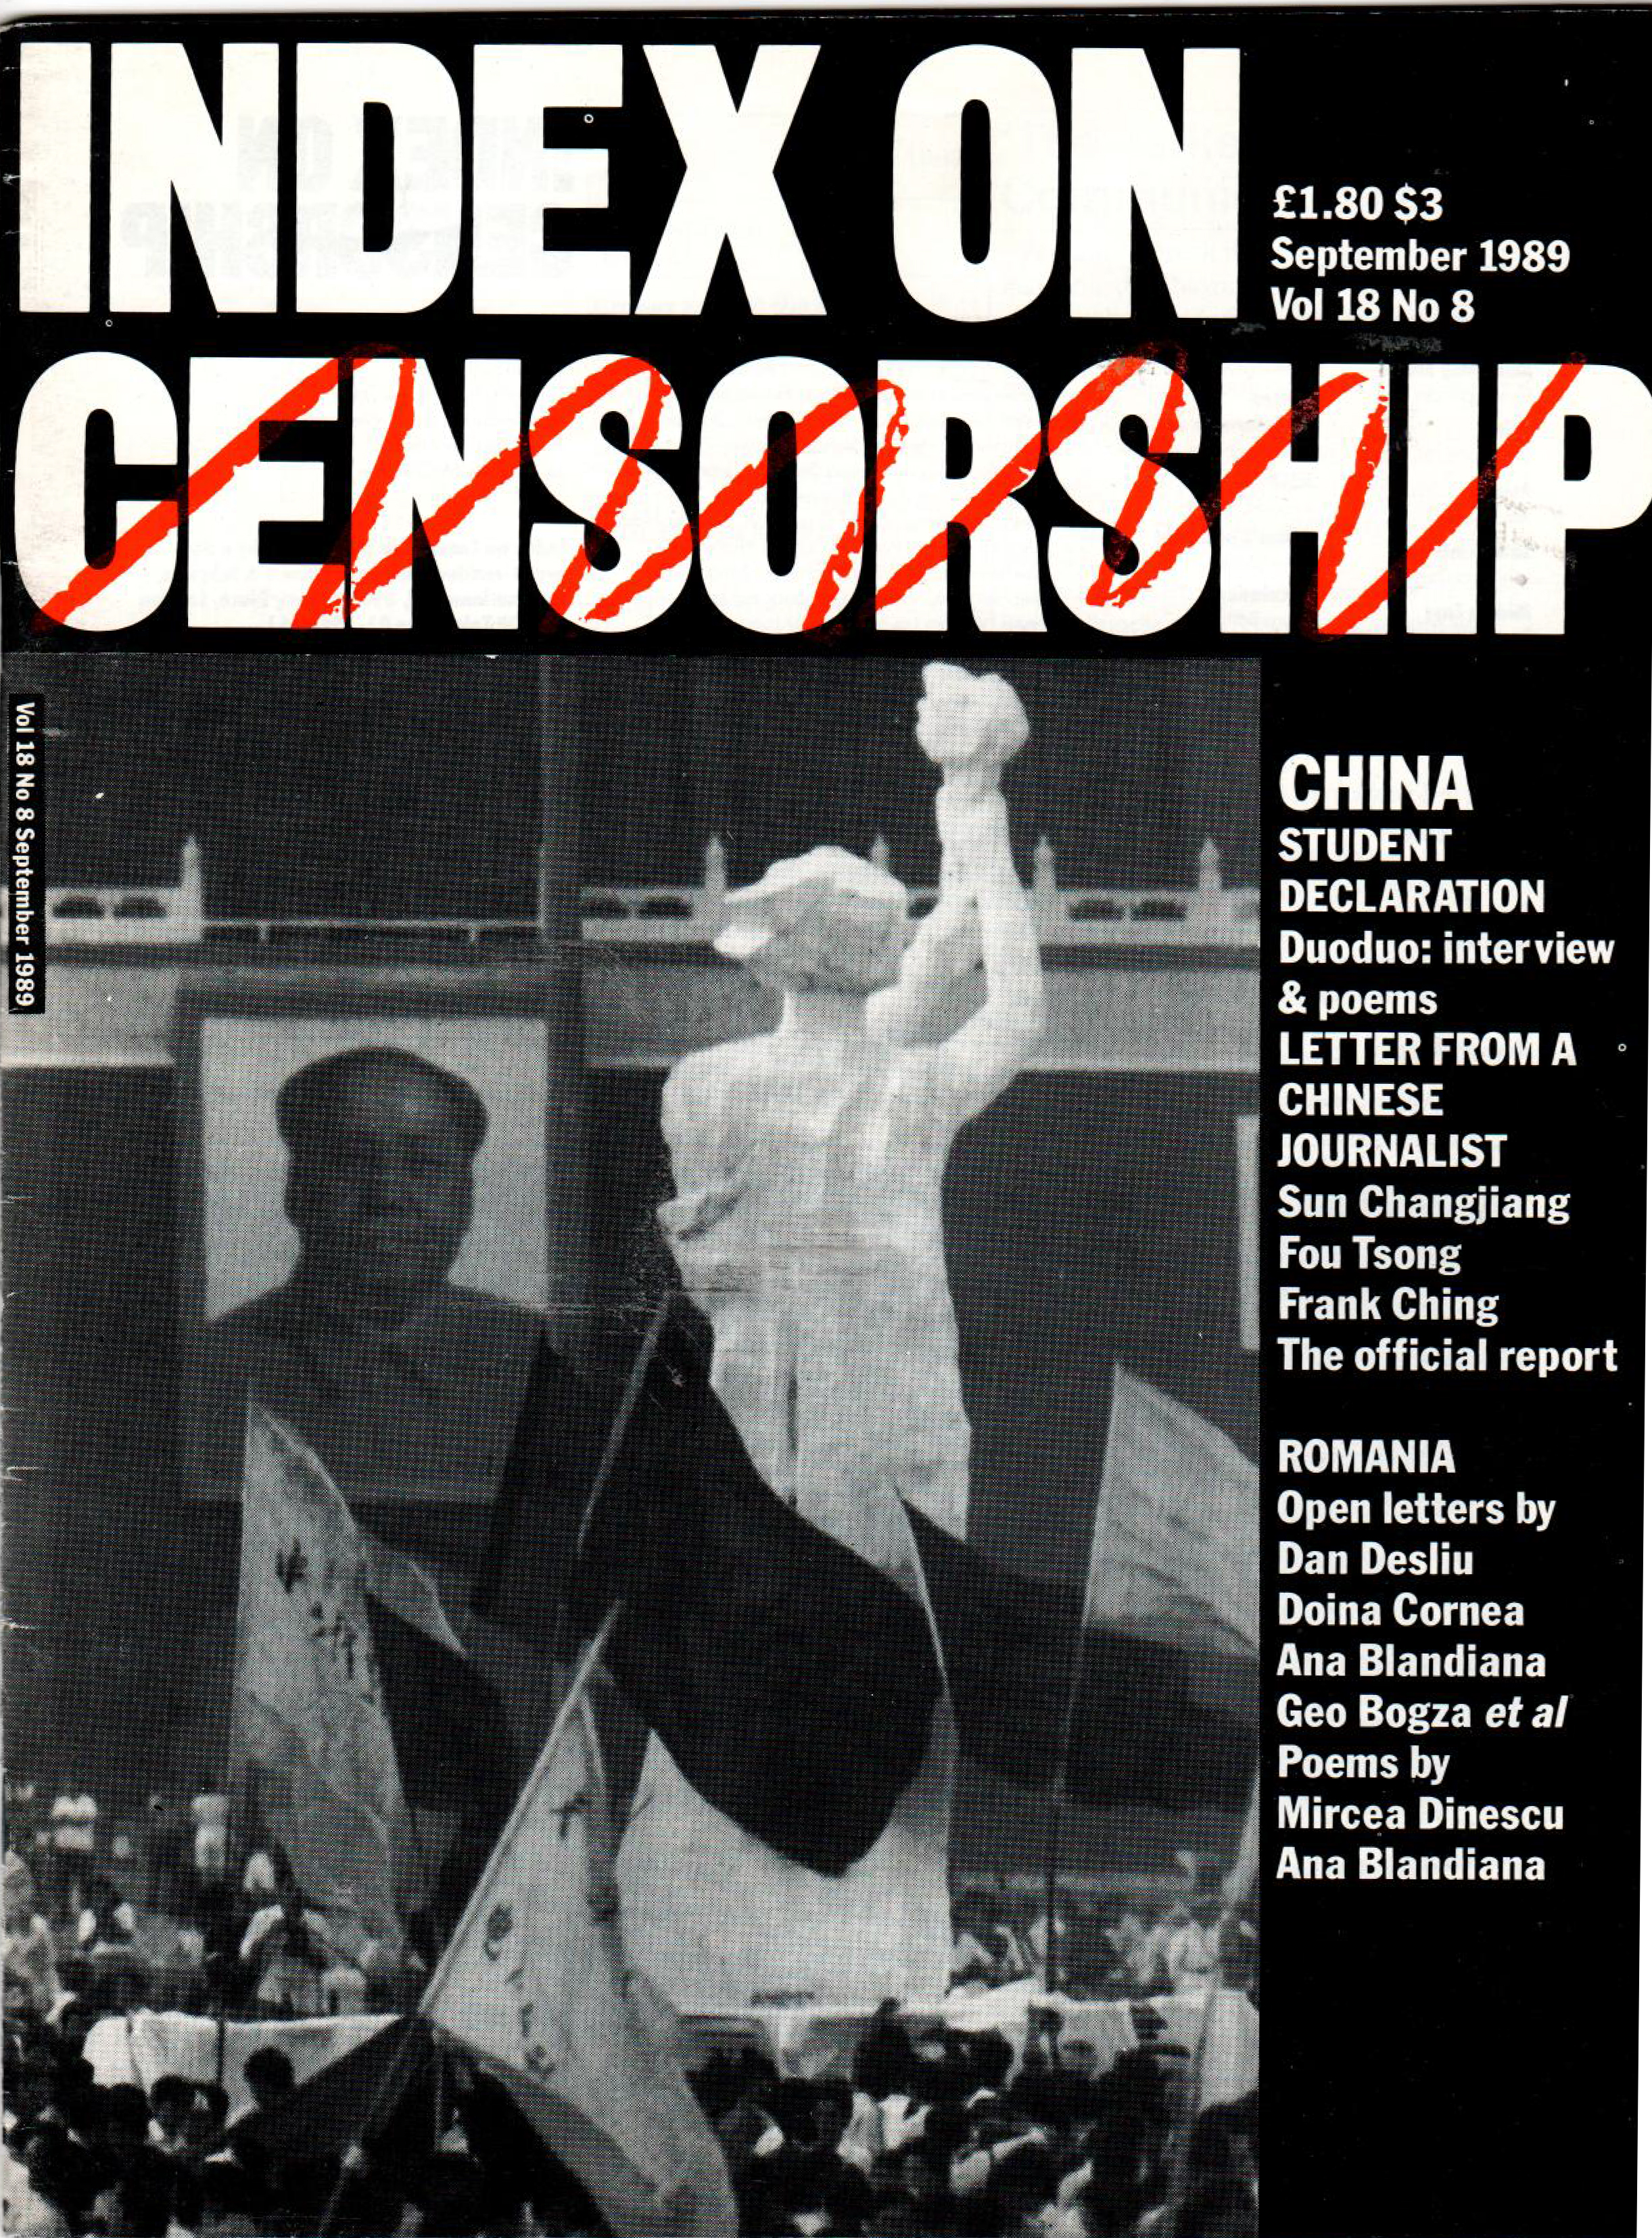 China: student declaration, the September 1989 issue of Index on Censorship magazine.